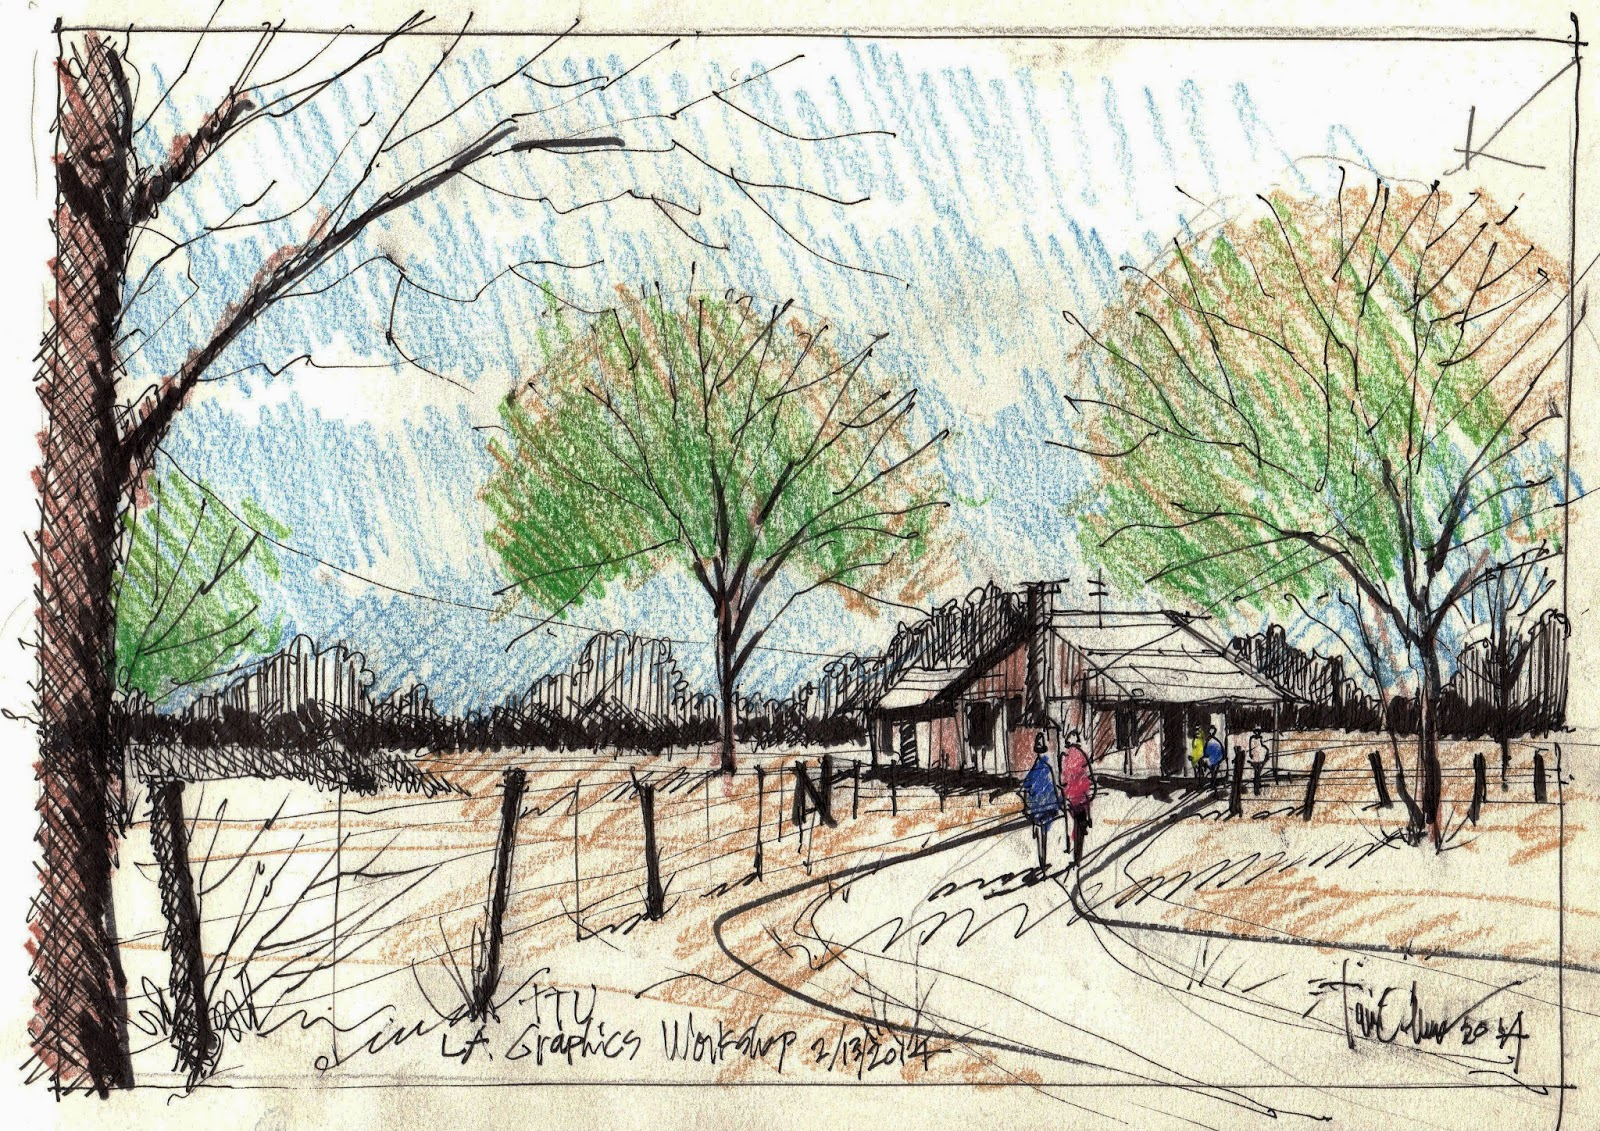 A Great Time Sketching With Texas Tech Landscape Architecture Students